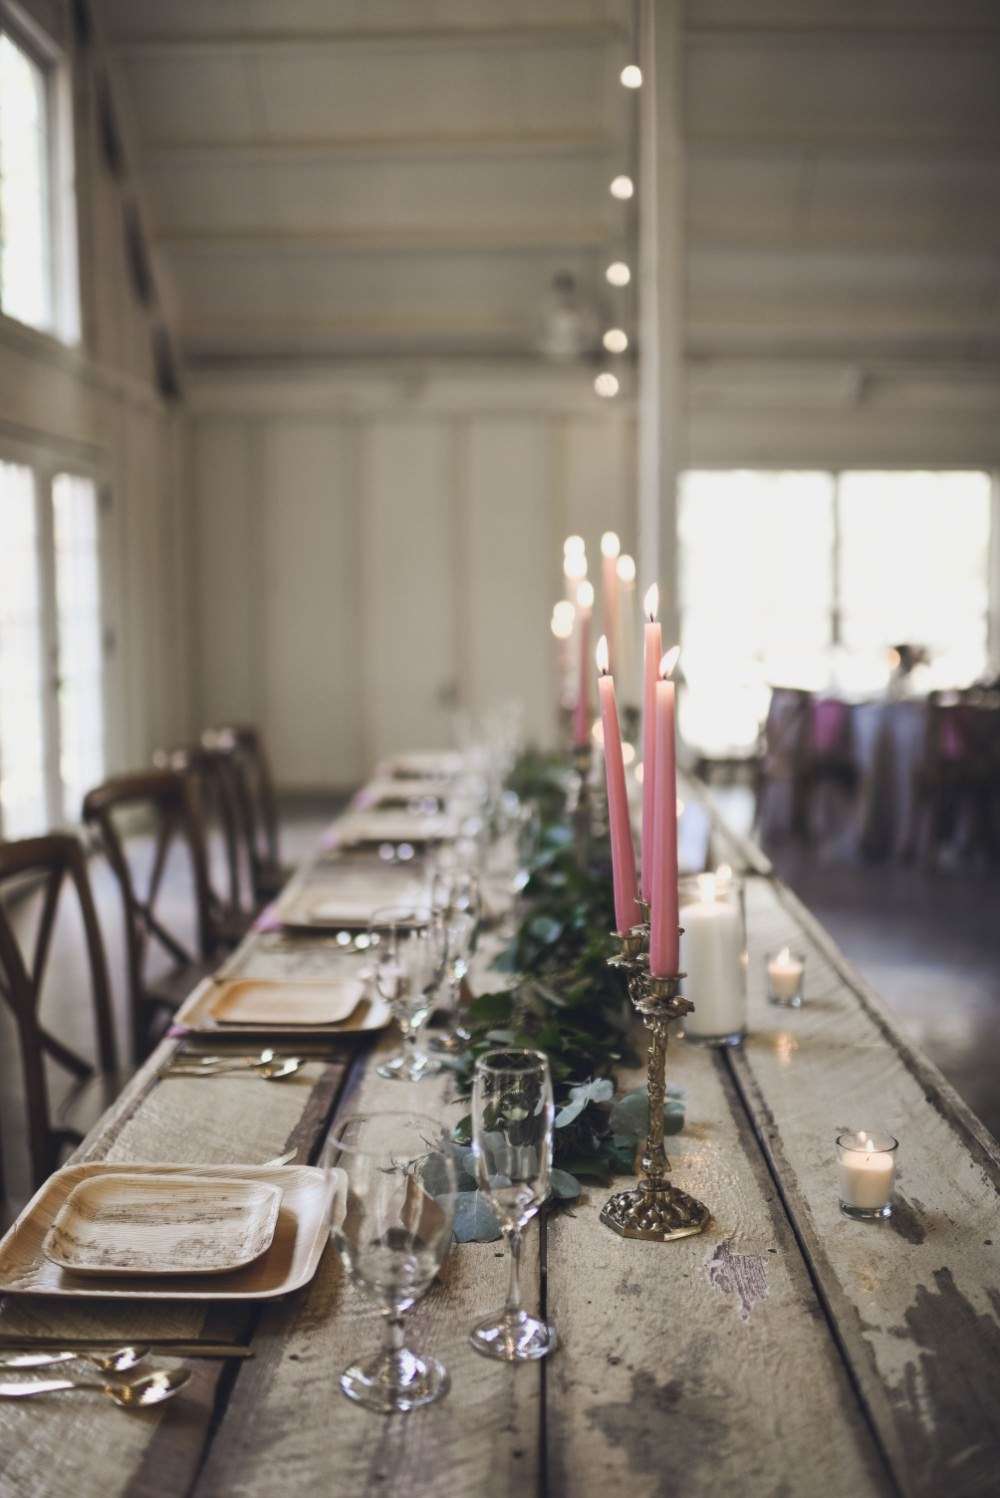 Table Decor Tablescape Flowers Pink Grey Flowers Centrepiece Candles Garland Swag Greenery Top Table Kindred Barn Wedding The Kindred Collective